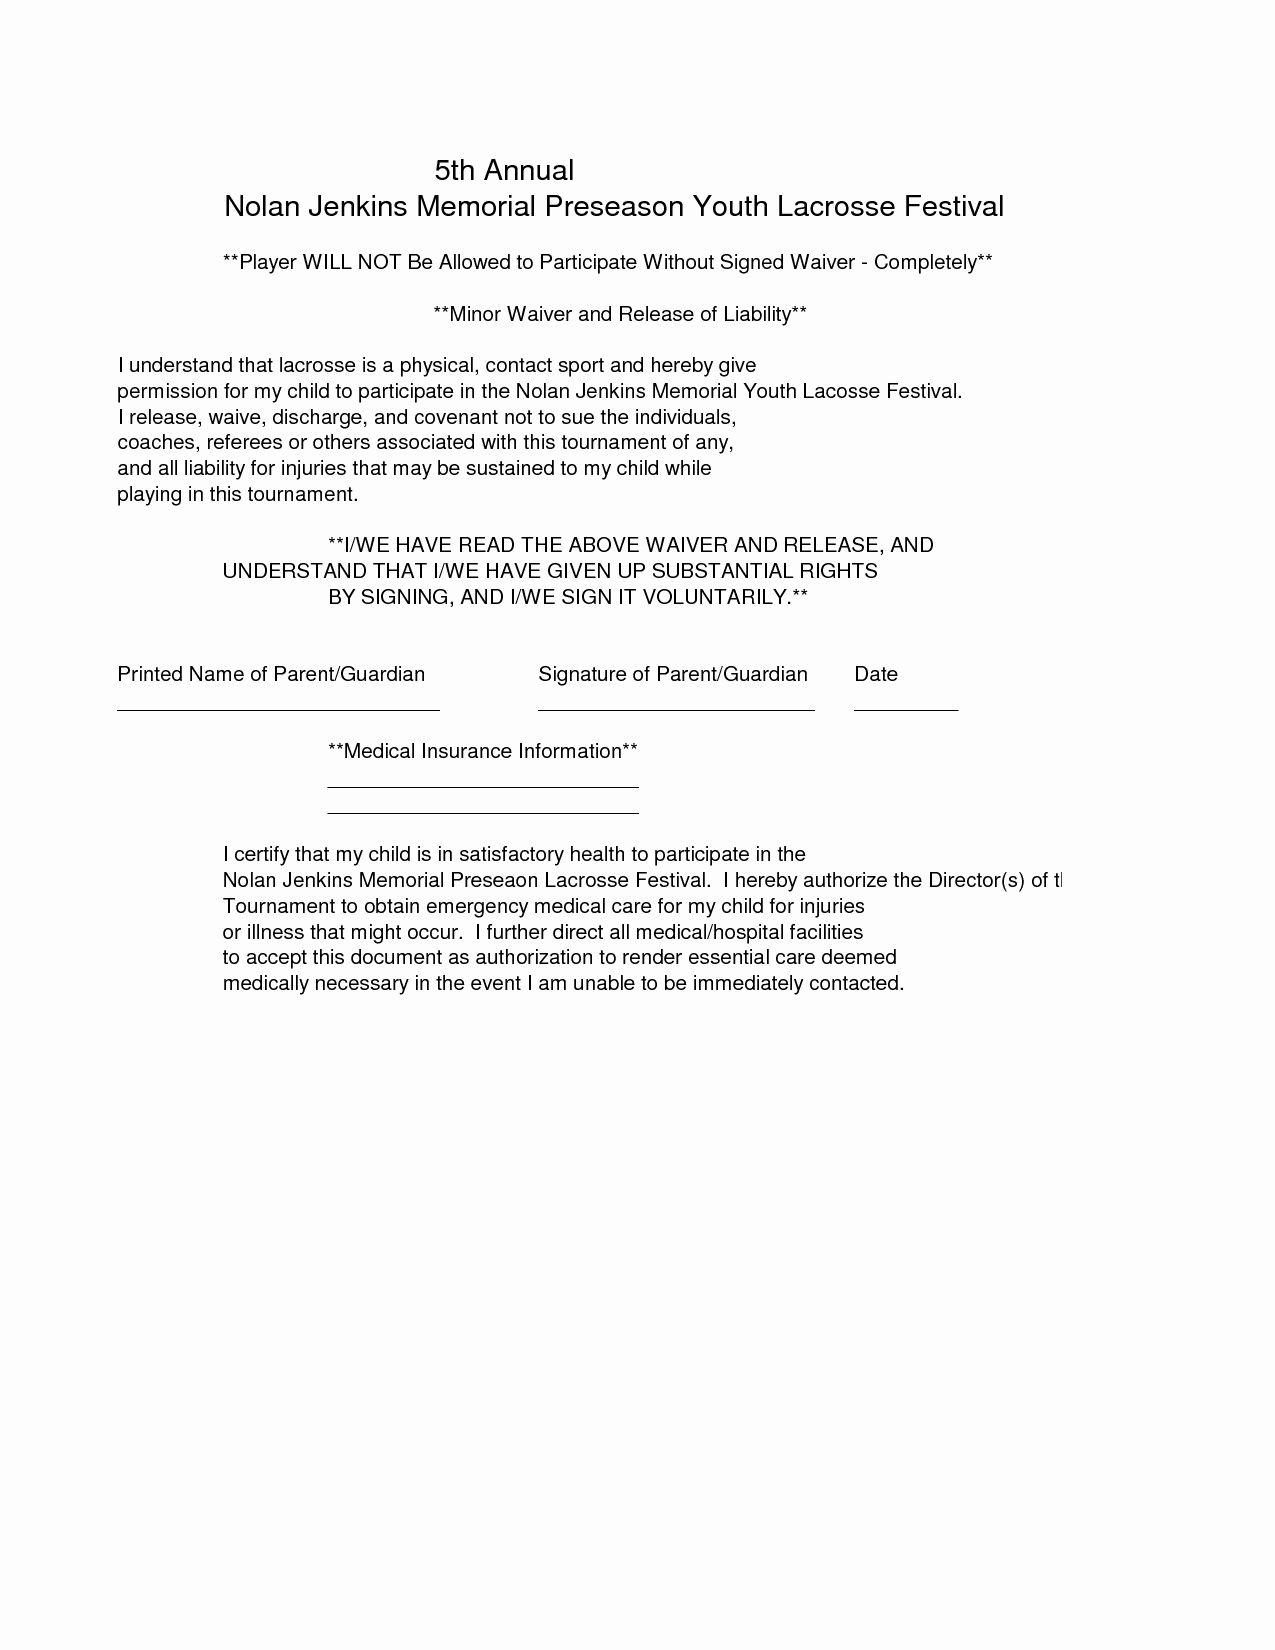 Liability Waiver Forms Template In 2020 Liability Waiver